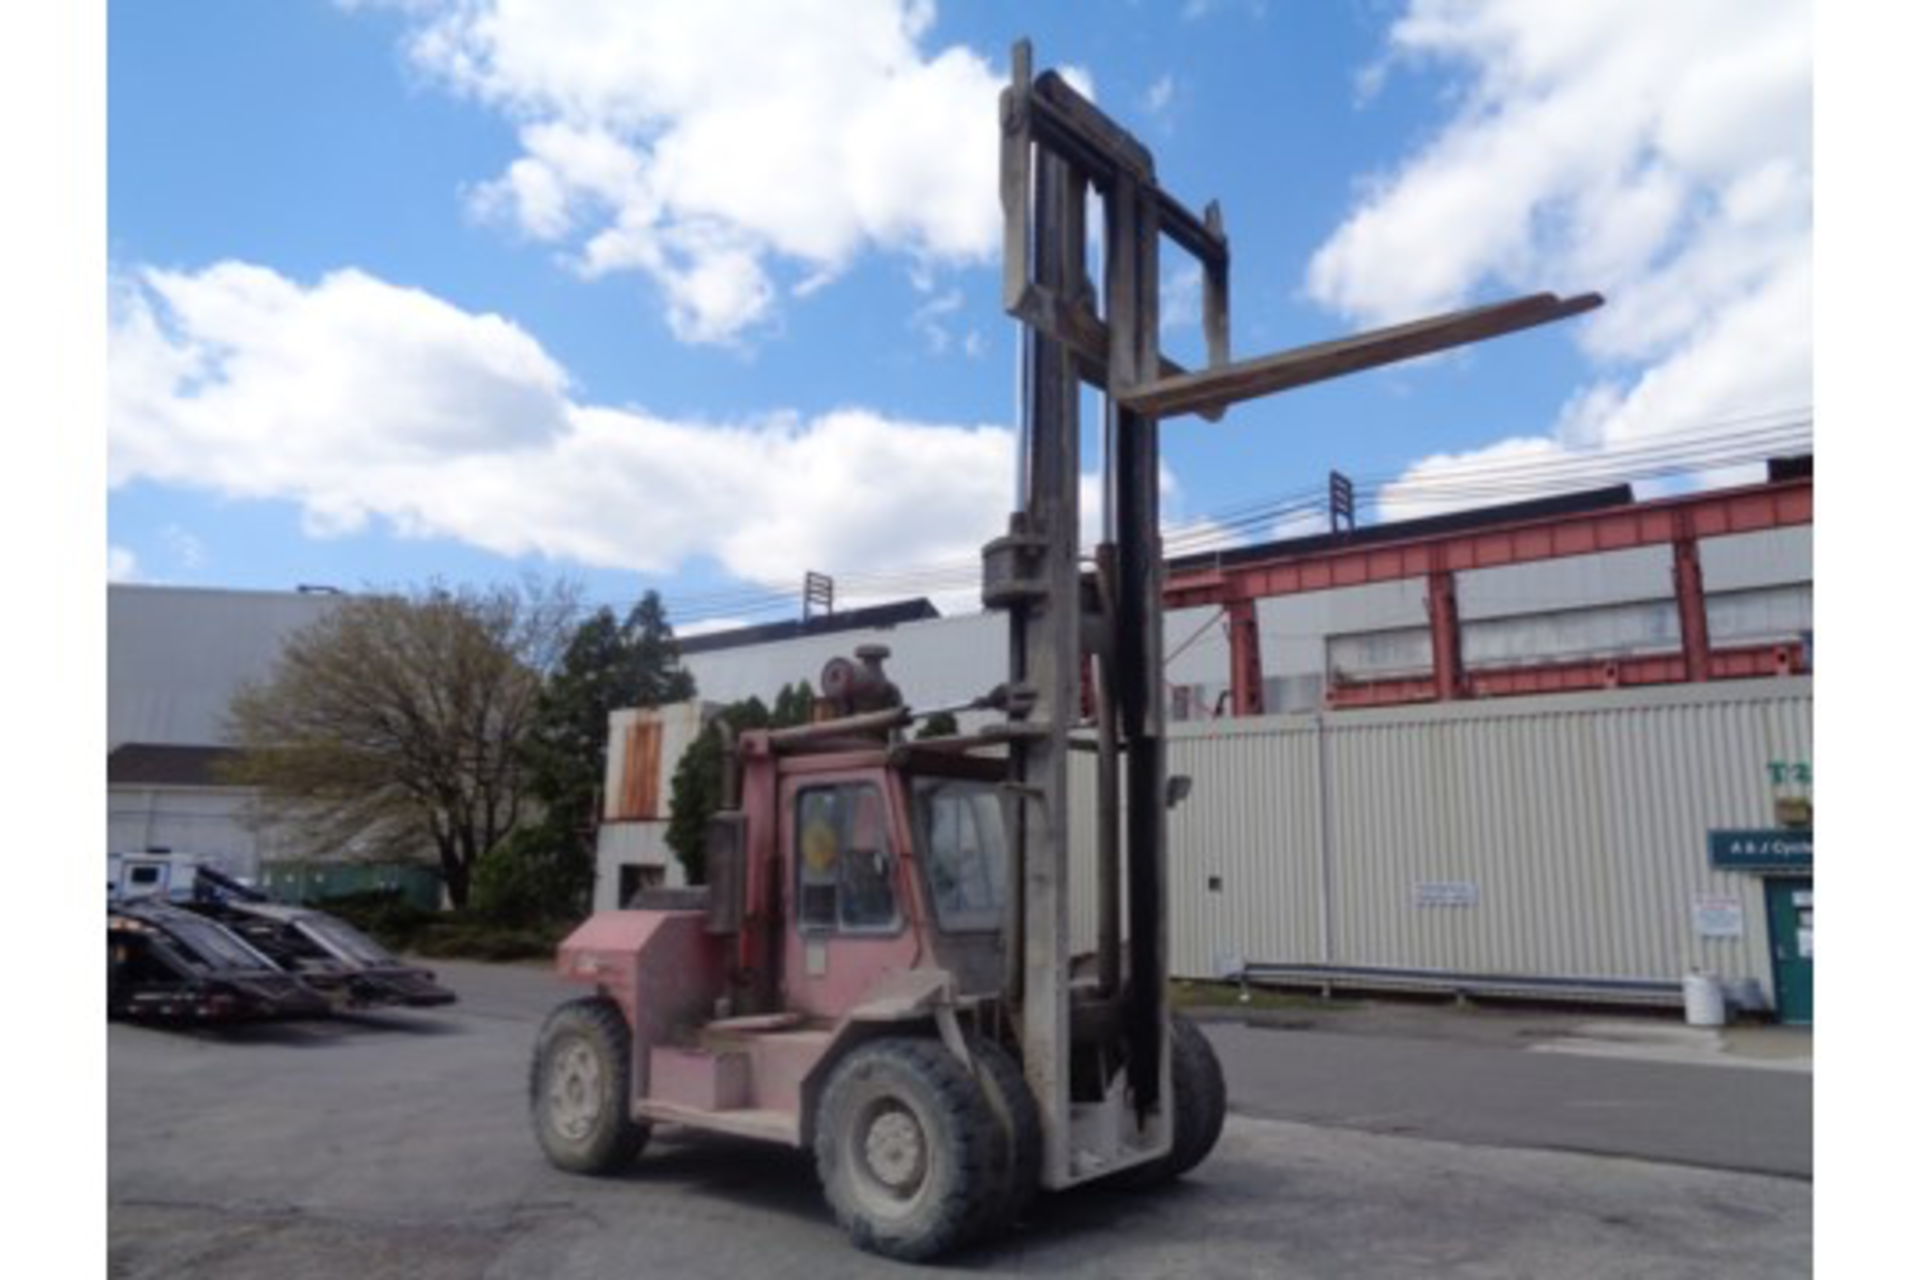 Taylor TE200S 20,000lb Forklift - Image 7 of 10